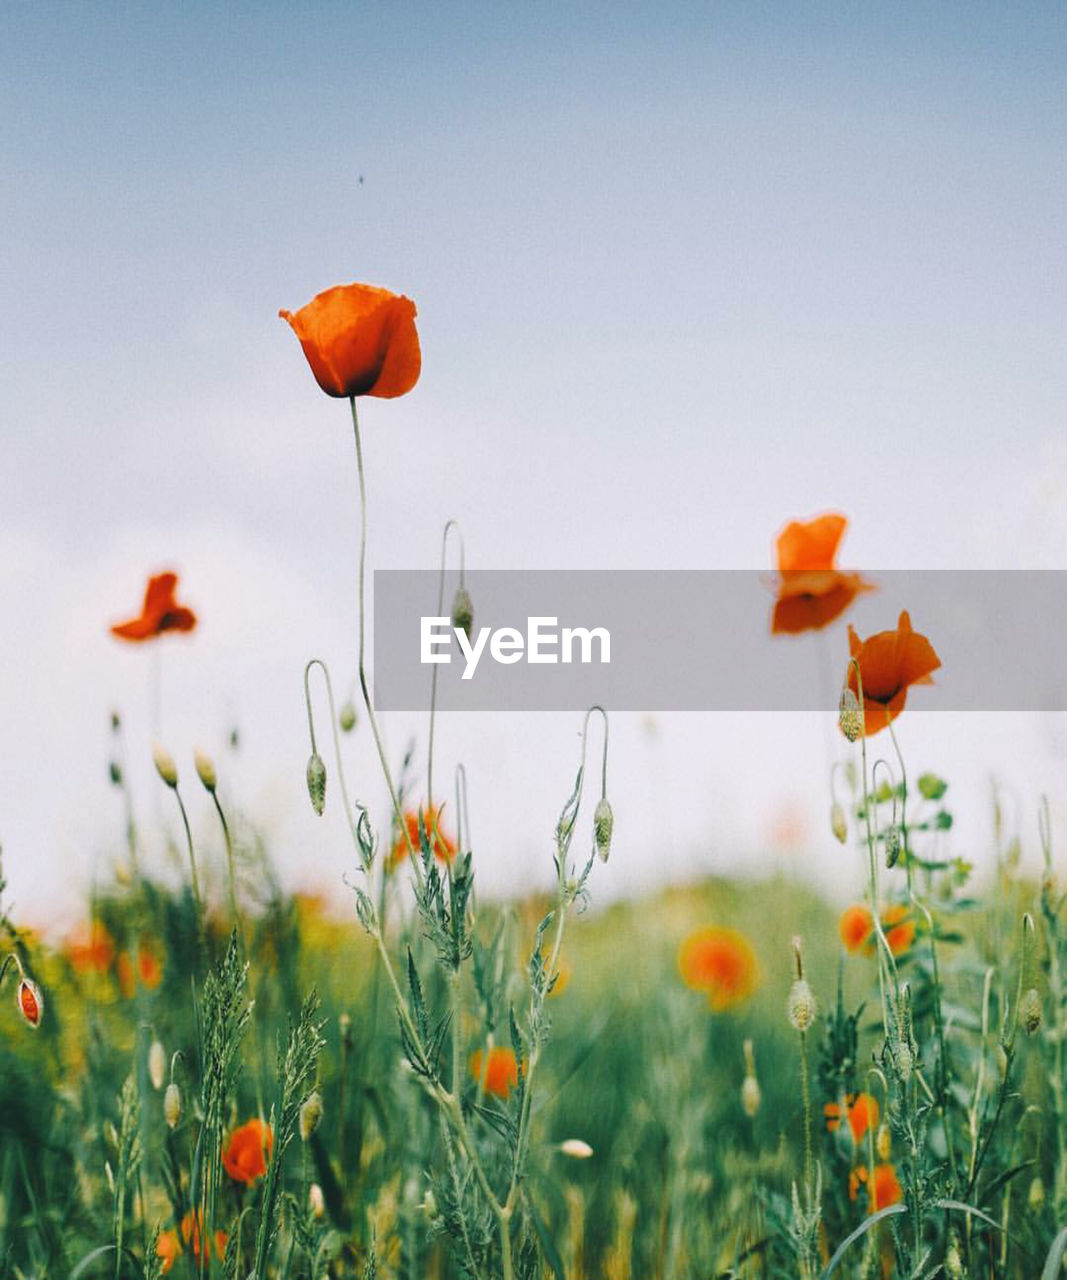 plant, flowering plant, flower, beauty in nature, fragility, growth, vulnerability, freshness, field, land, petal, sky, nature, poppy, close-up, no people, orange color, inflorescence, flower head, red, outdoors, orange